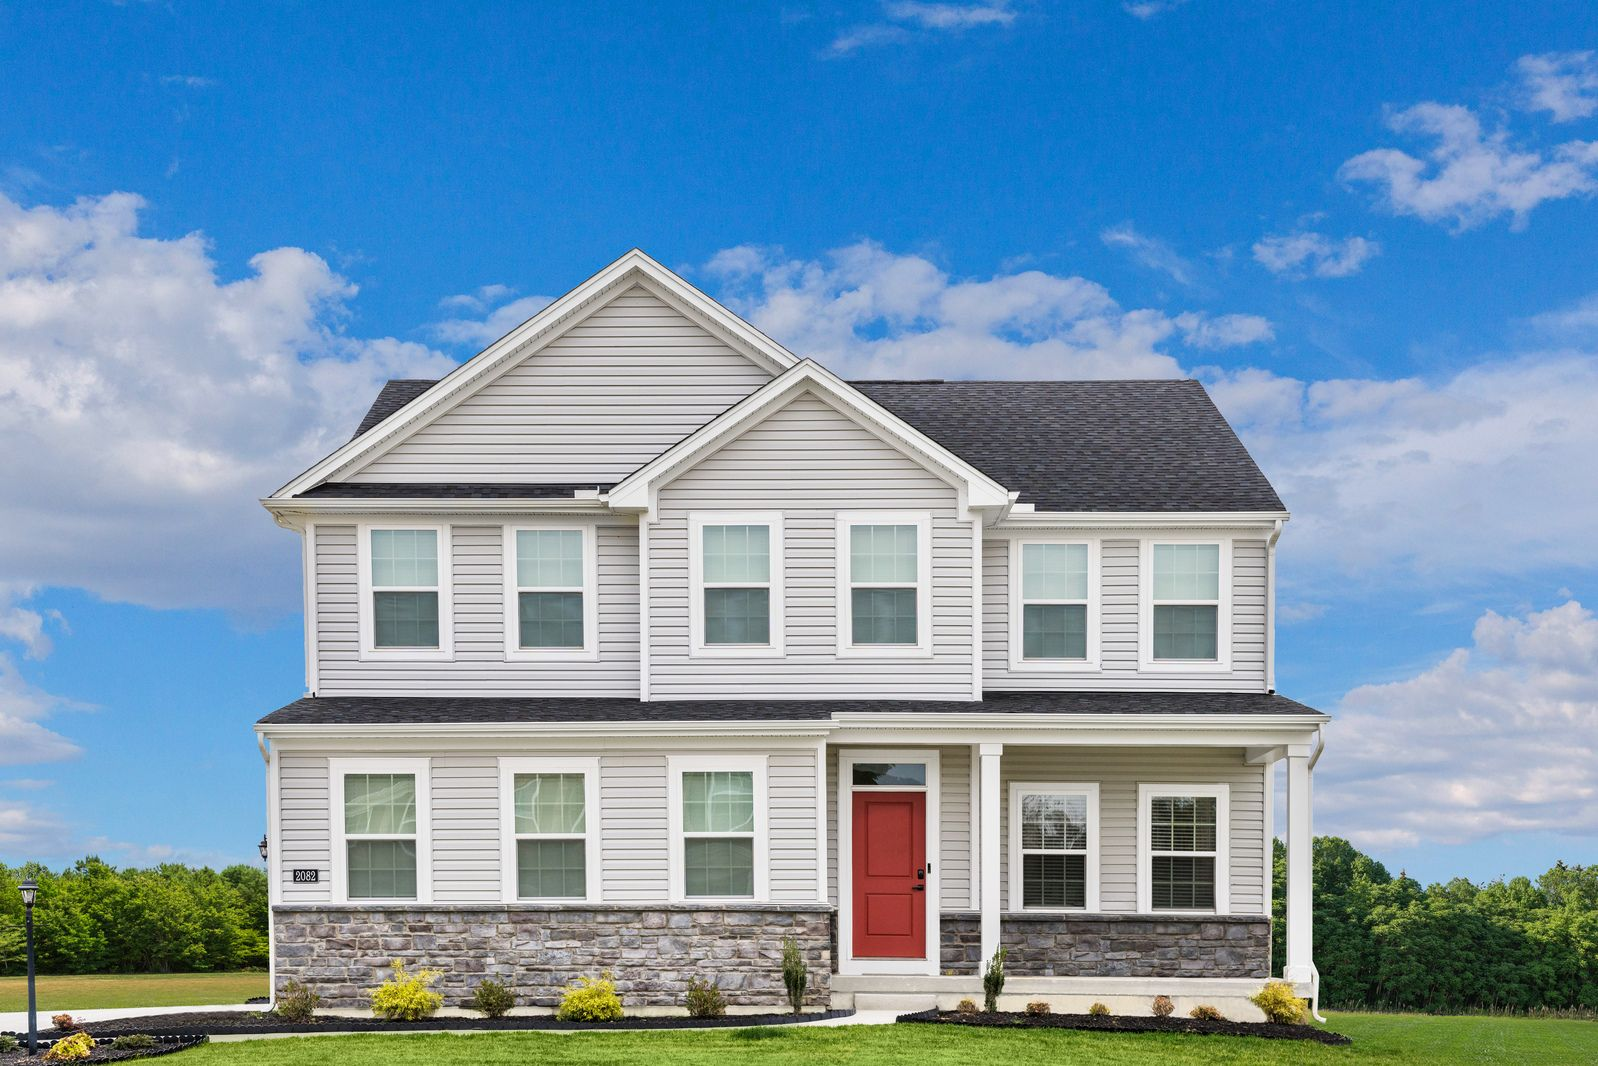 WELCOME TO LANDSDALE:Move up to your new single family home with our latest designs, included luxury finishes, and spacious backyards! Just minutes from I-270.Click here to schedule your appointment today.